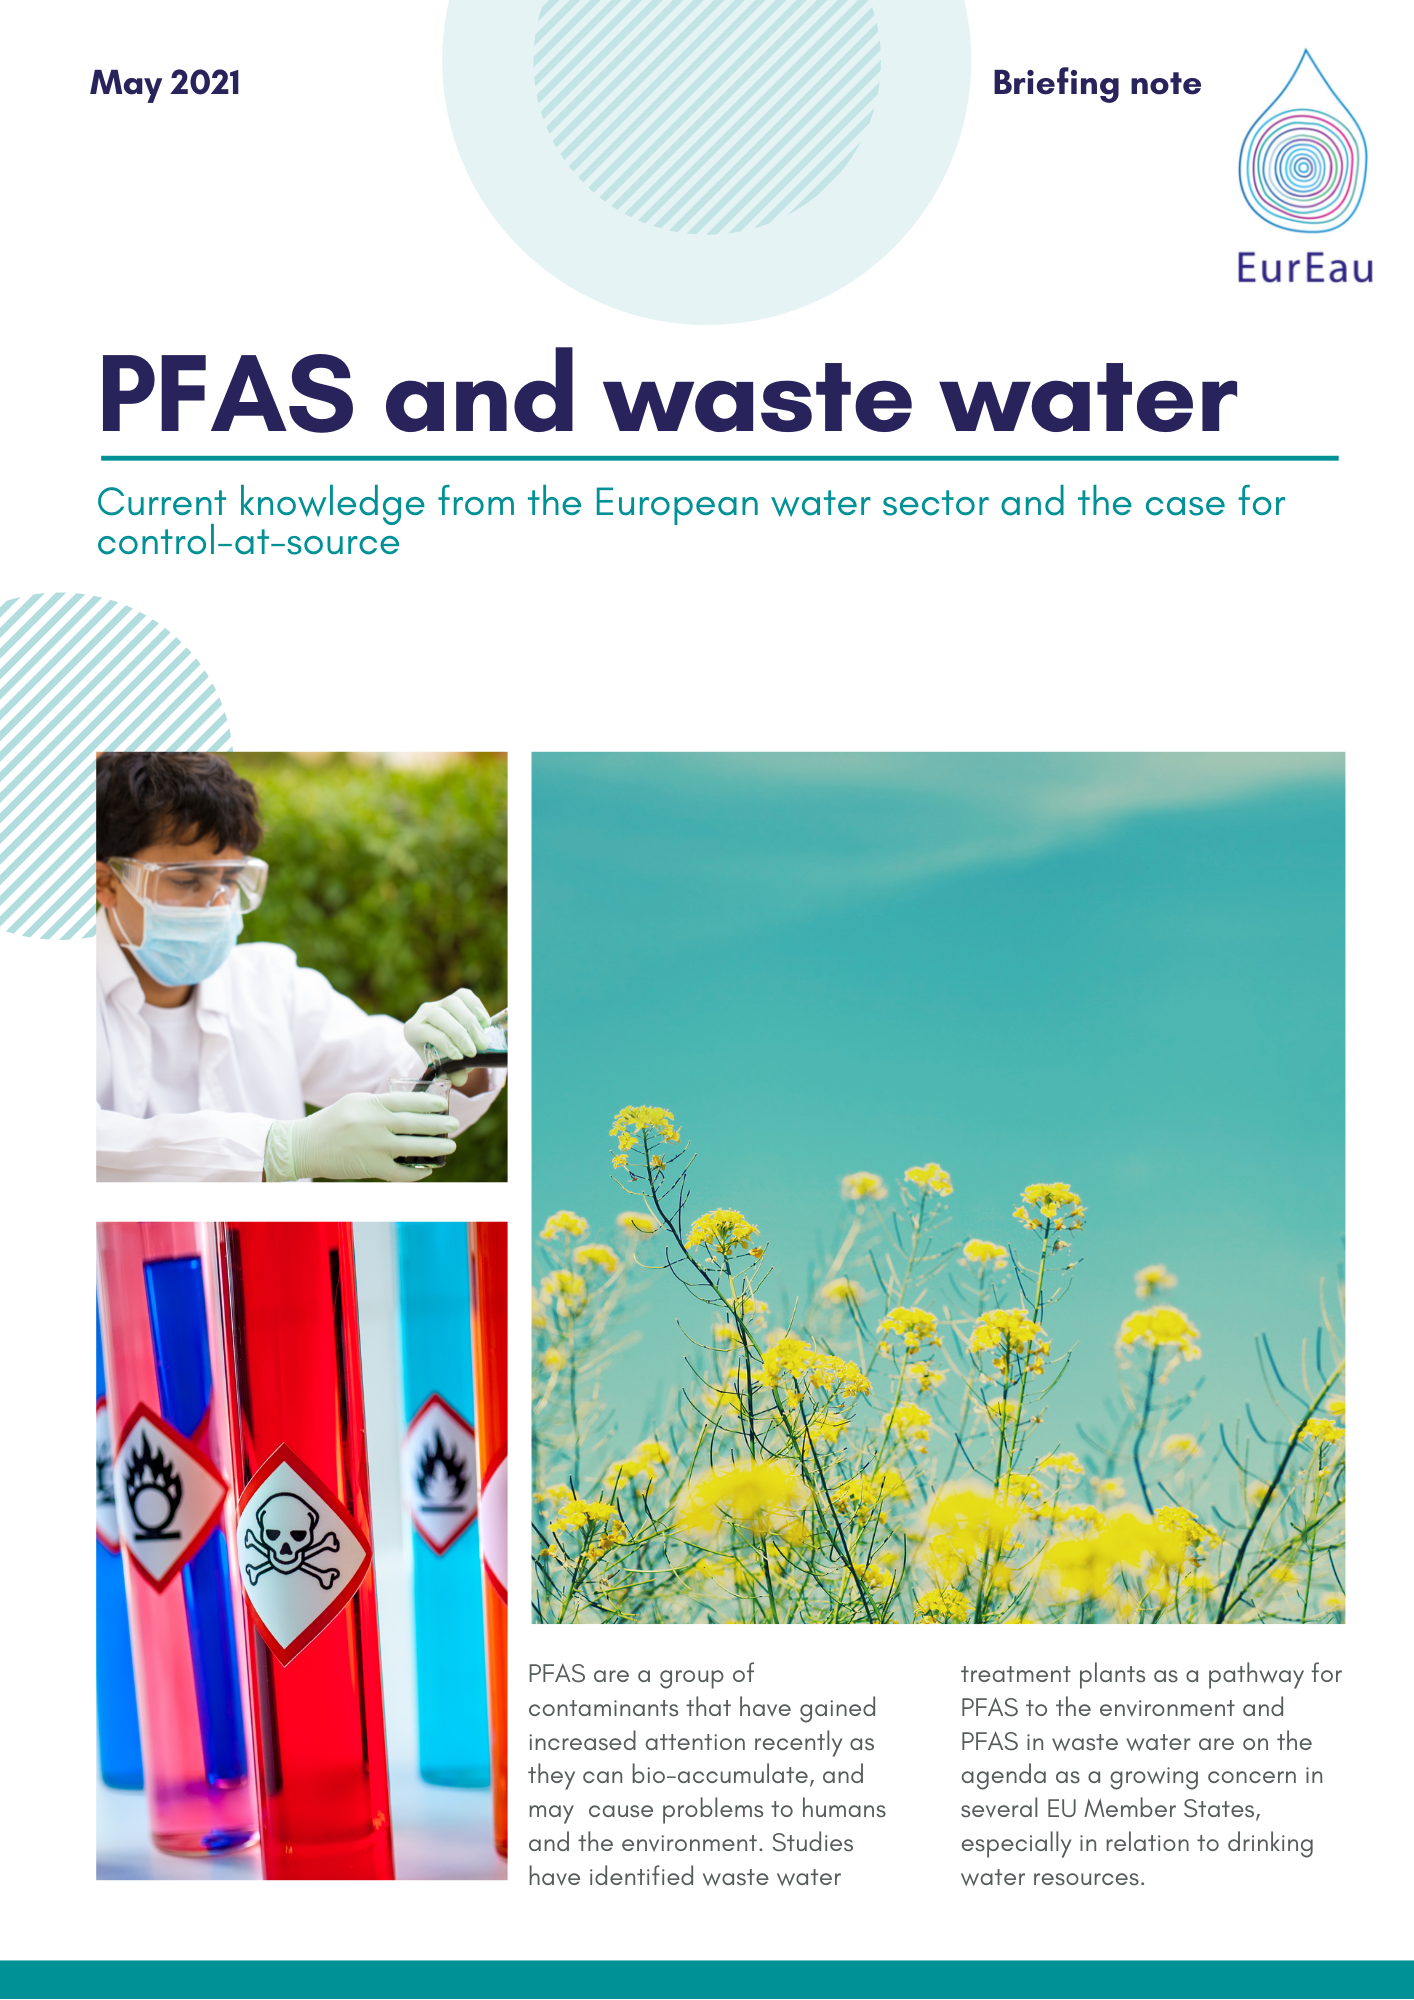 Briefing Note on PFAS and Waste Water